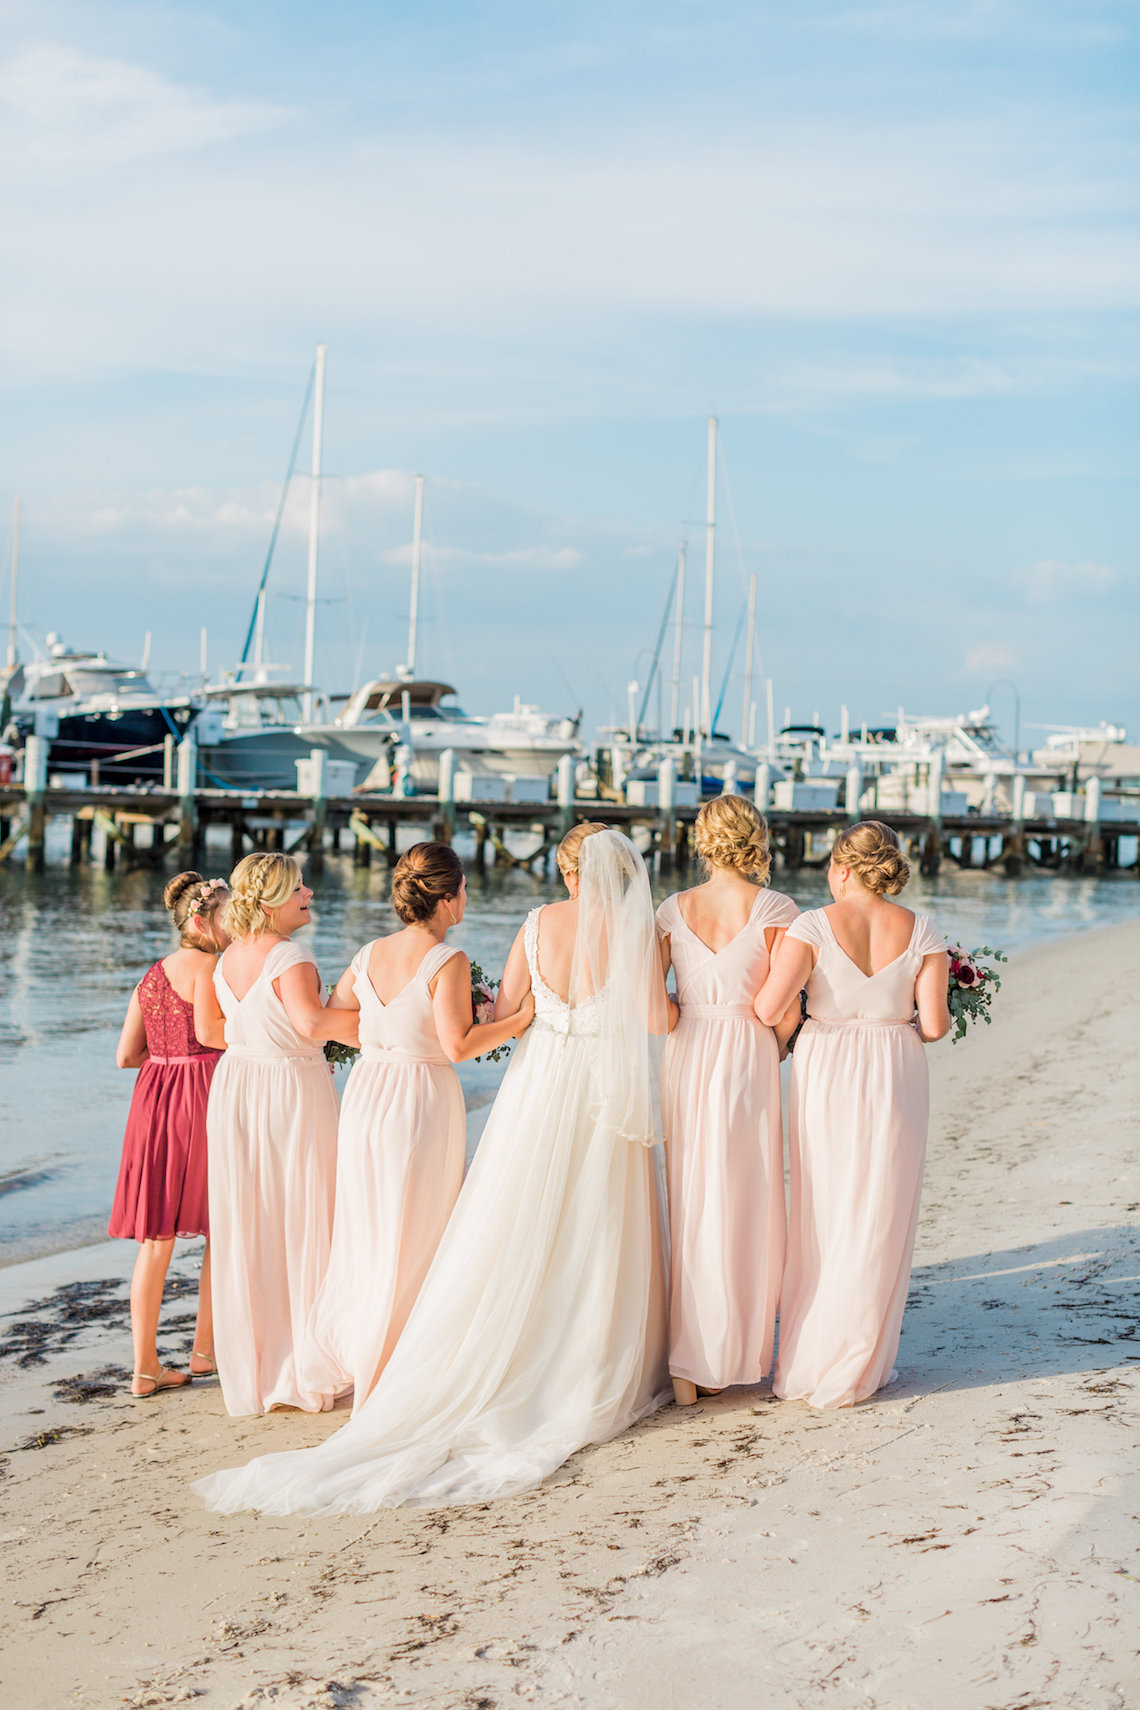 View More: http://lmartinweddingphotography.pass.us/nikki-rex-wedding